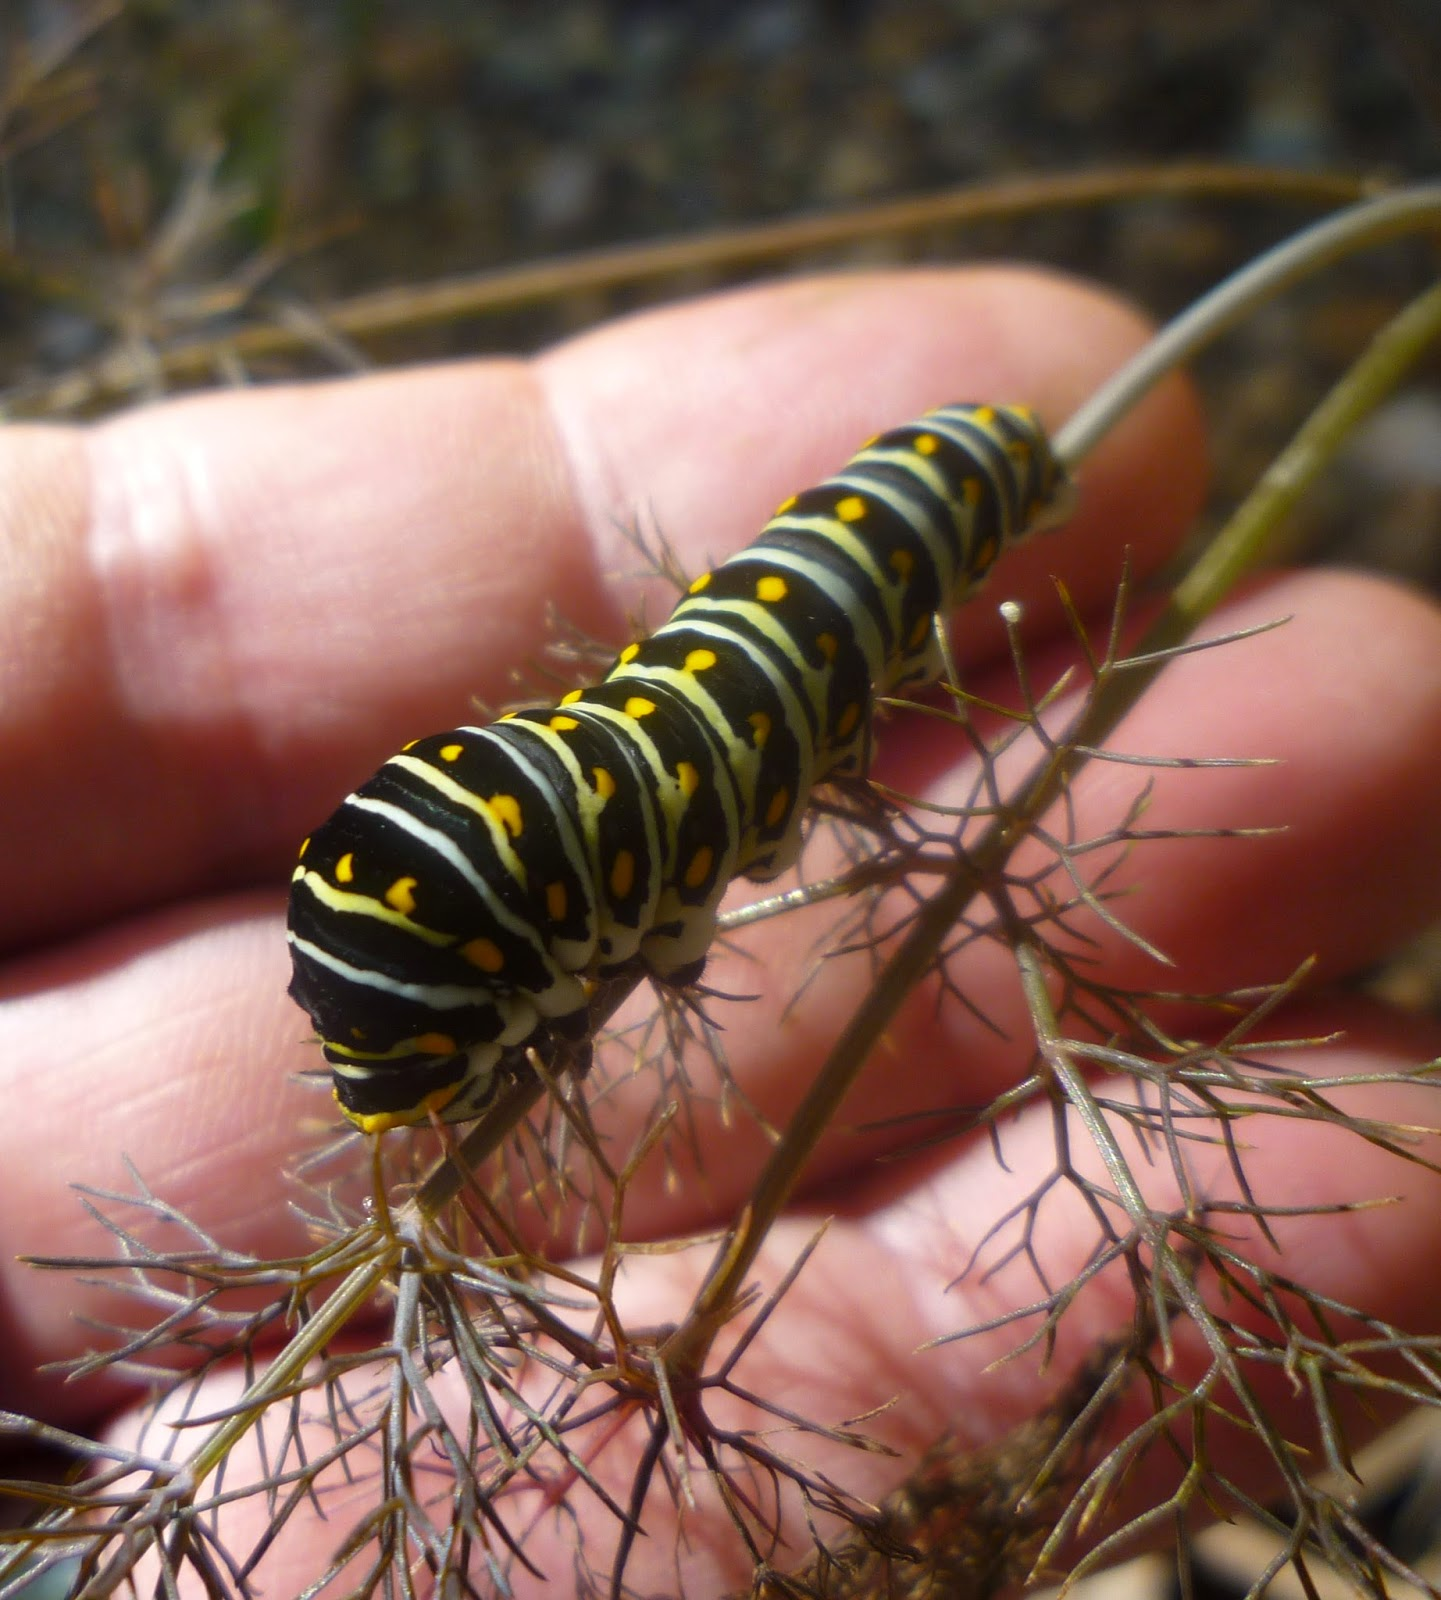 From Bluebirds to Turtles: Black Swallowtail Caterpillars ...